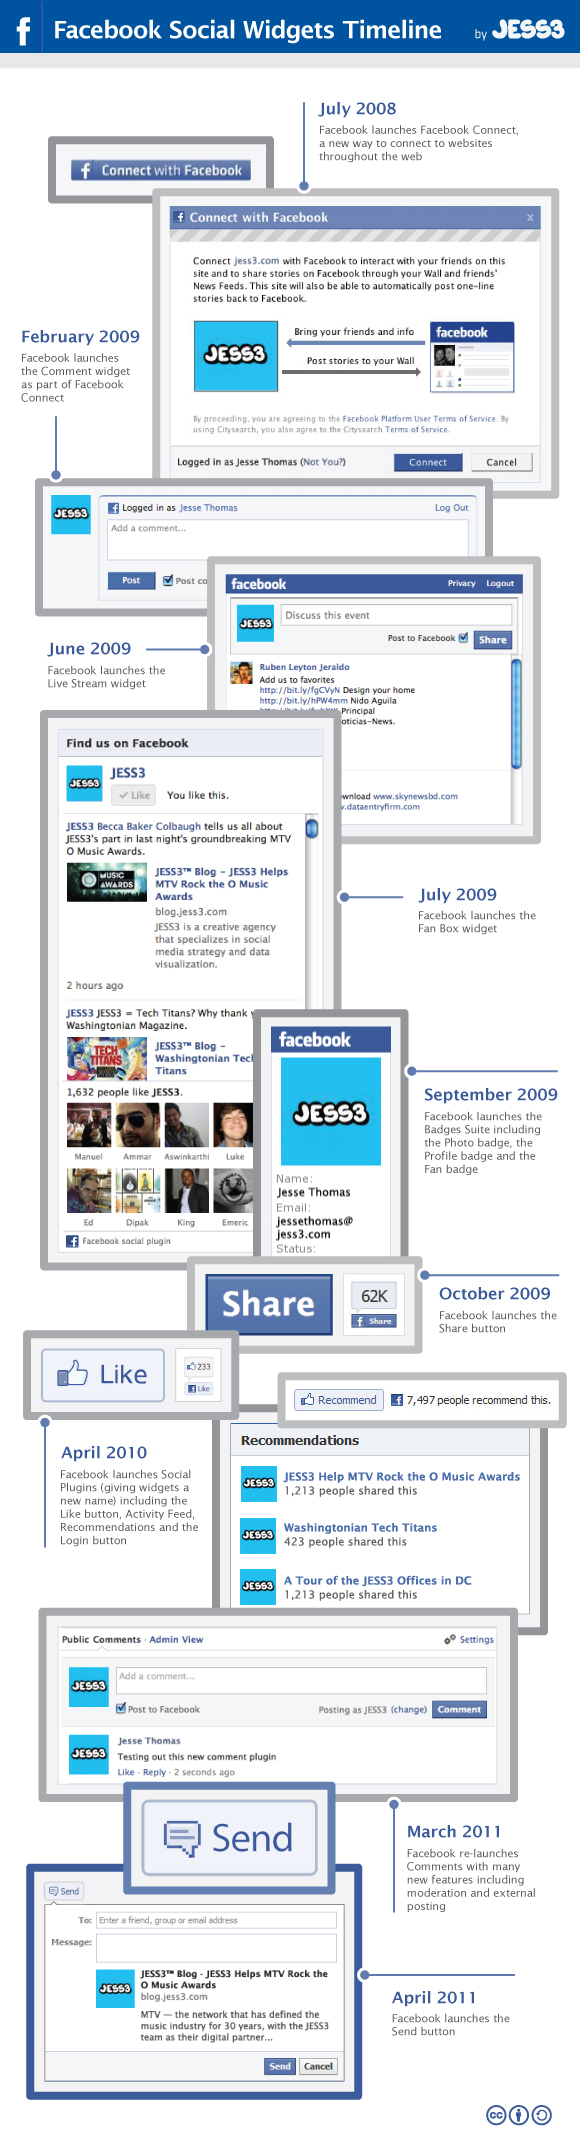 Facebook Social Plugins Timeline Infographic